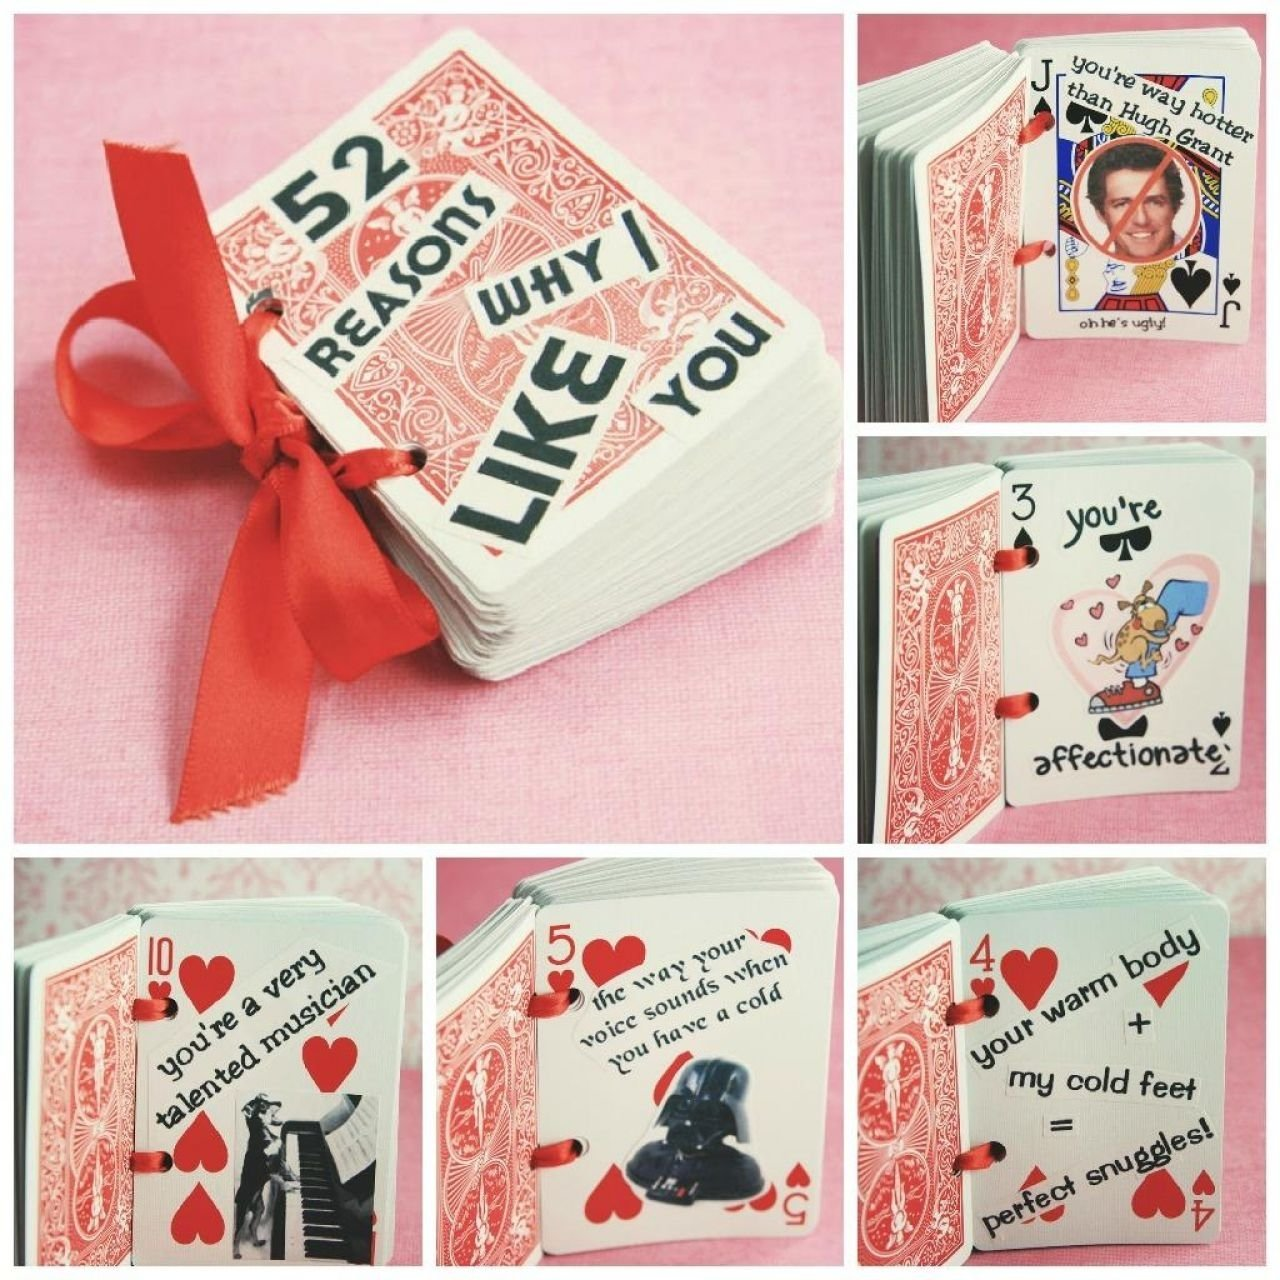 10 Most Popular Creative Ideas For Valentines Day valentines day crafts him lovely valentine gifts your dma homes 2 2020